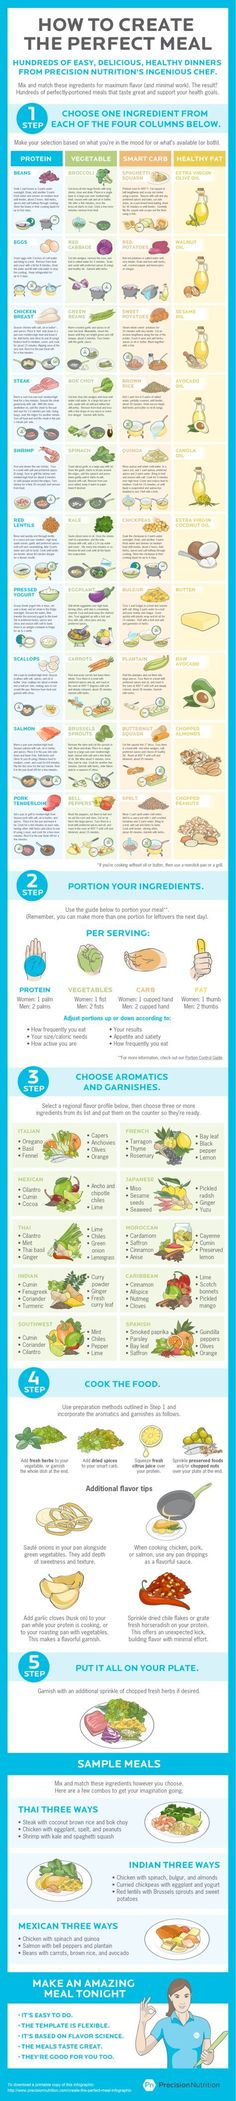 Use this cheat sheet to make a healthy, balanced meal out of whatever food you're craving.